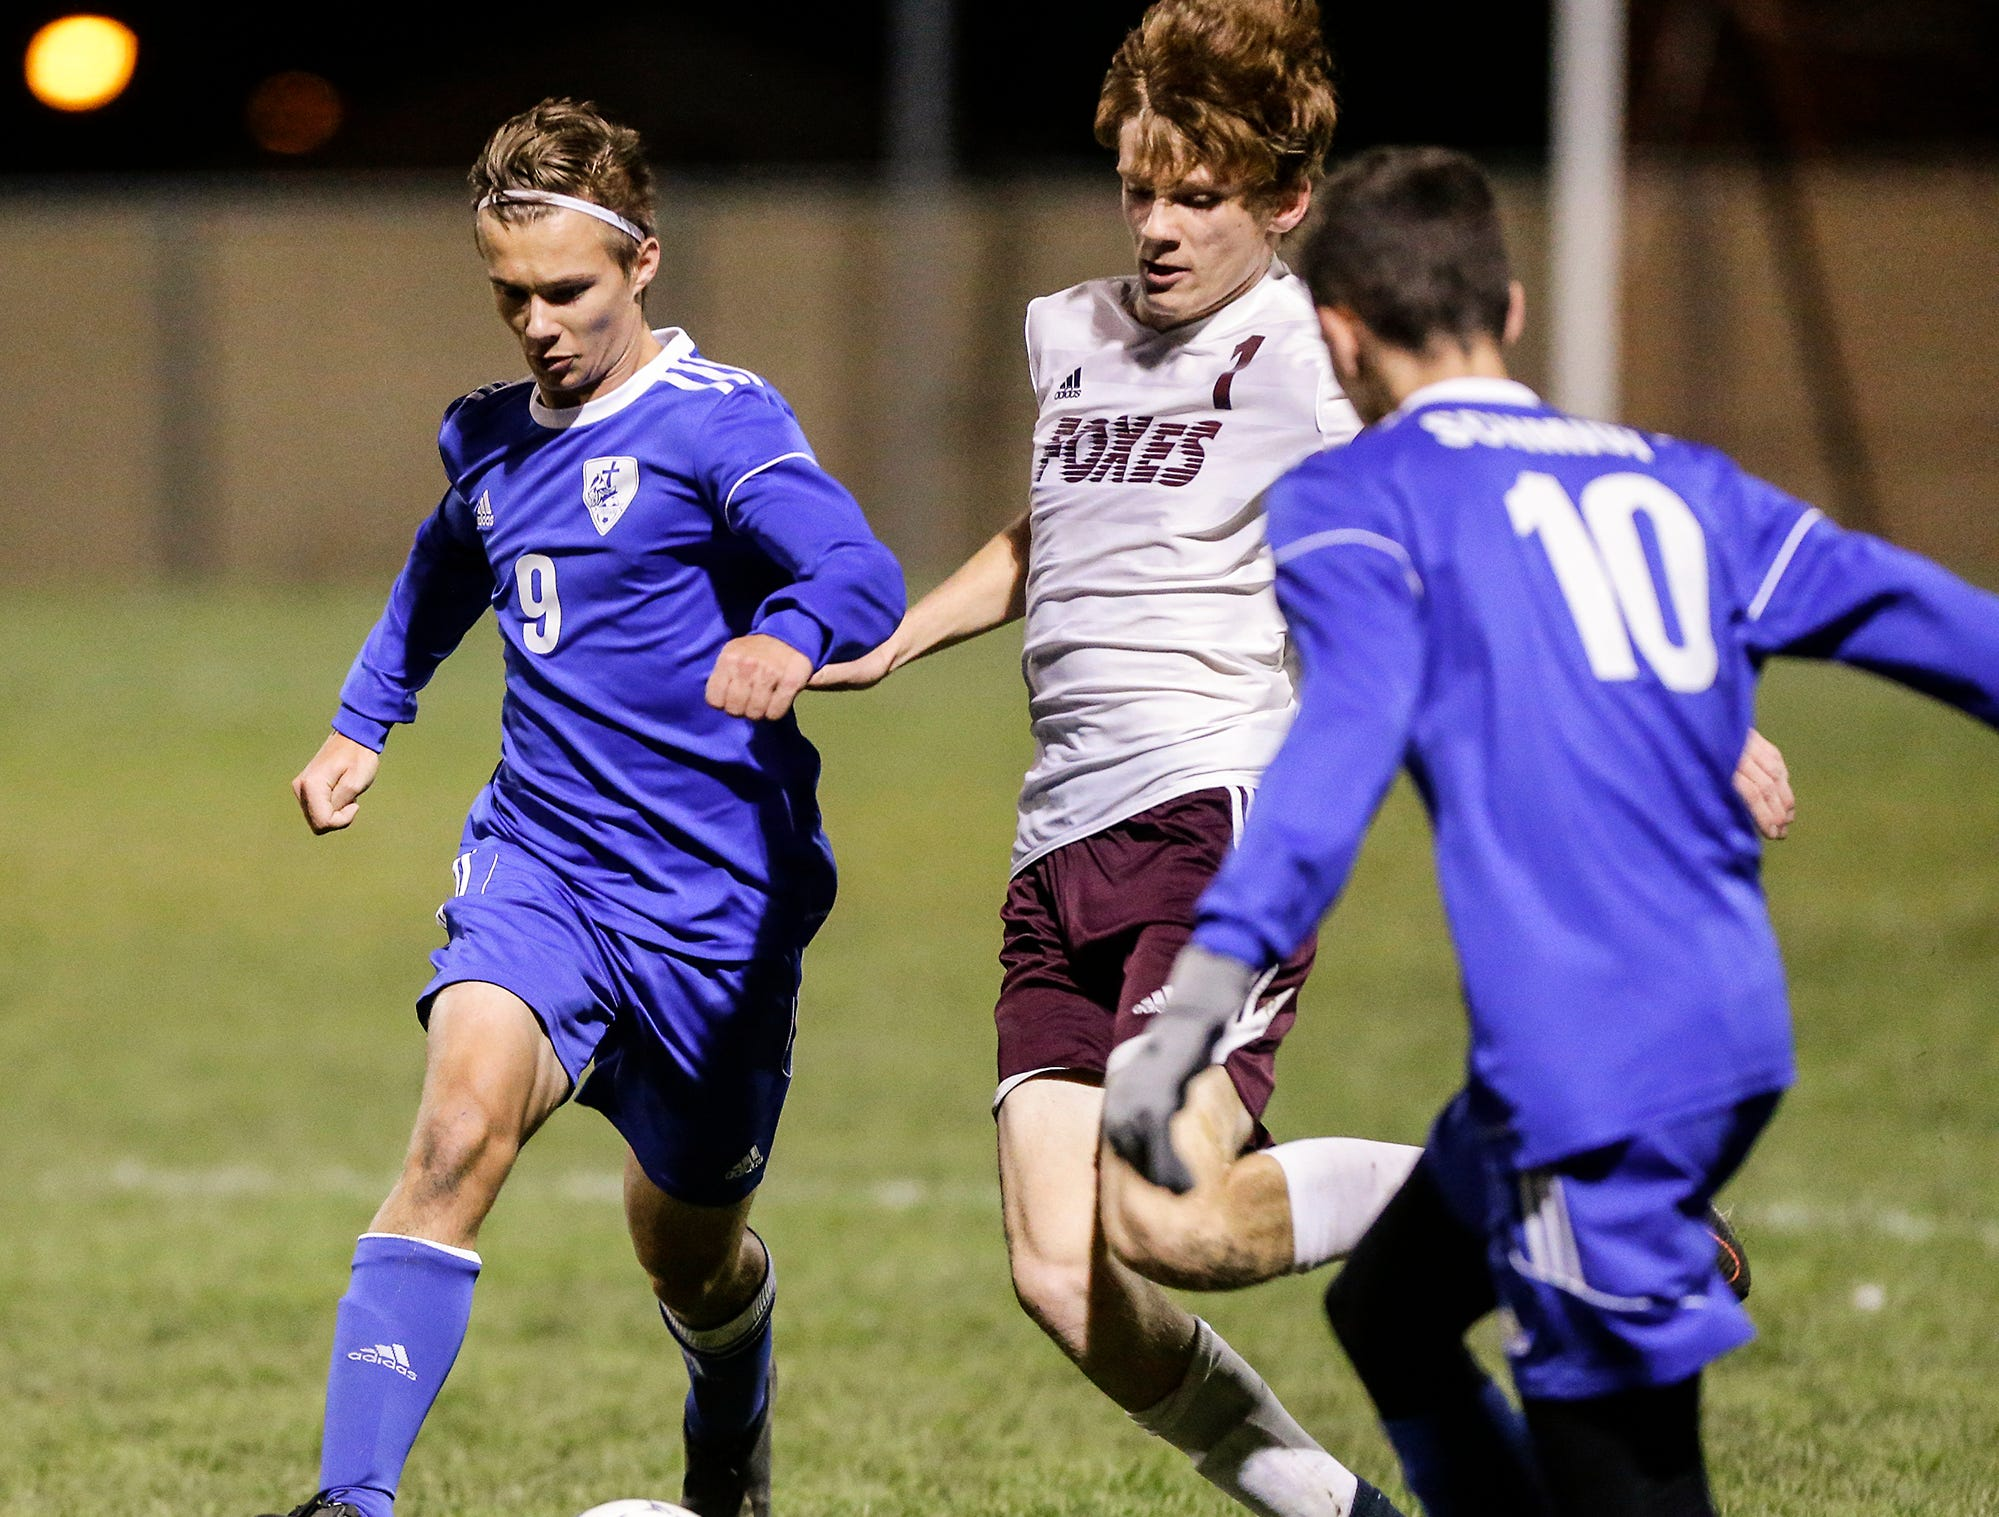 Winnebago Lutheran Academy soccer's Kaleb Schroeder battles for the ball against Omro High School's Garrett Ellis during their WIAA regional playoff game Thursday, October 18, 2018 in Fond du Lac, Wisconsin. Doug Raflik/USA TODAY NETWORK-Wisconsin